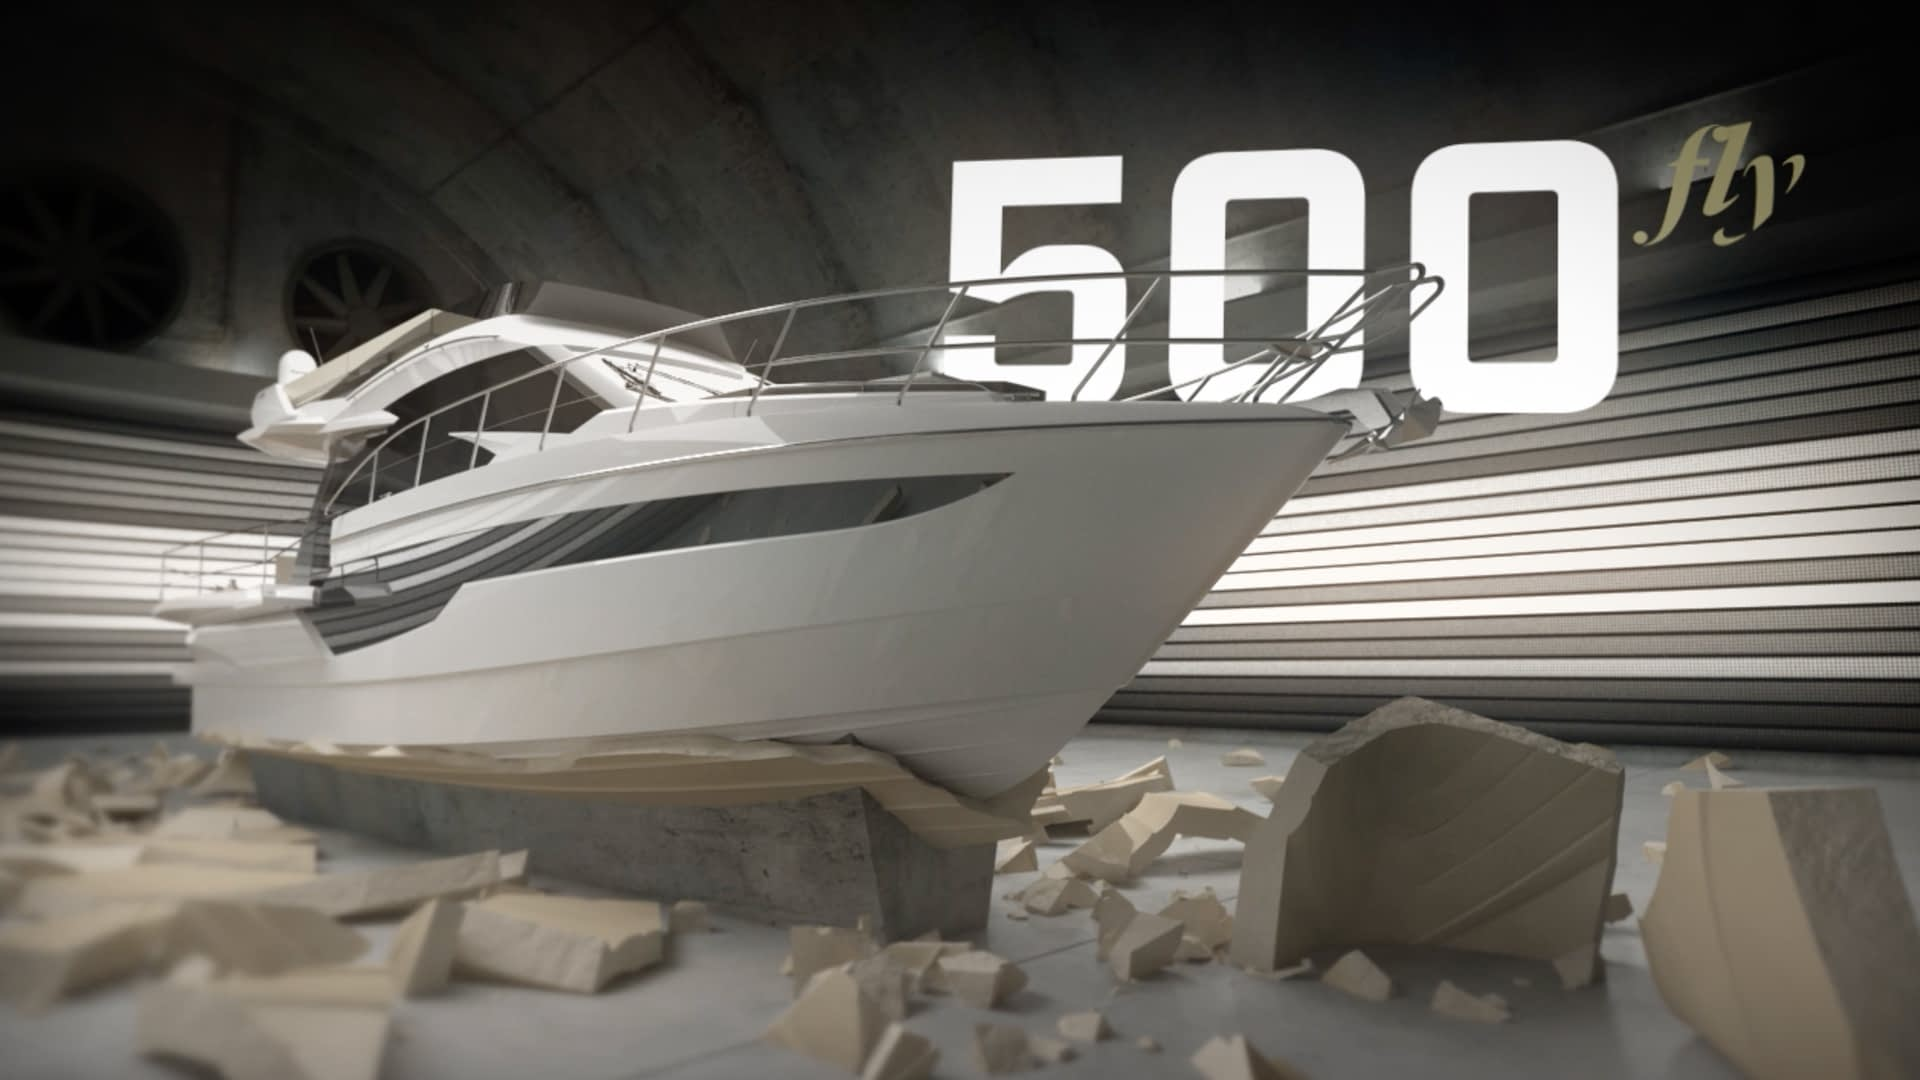 Galeon Yachts video still of boat breaking out of a mold